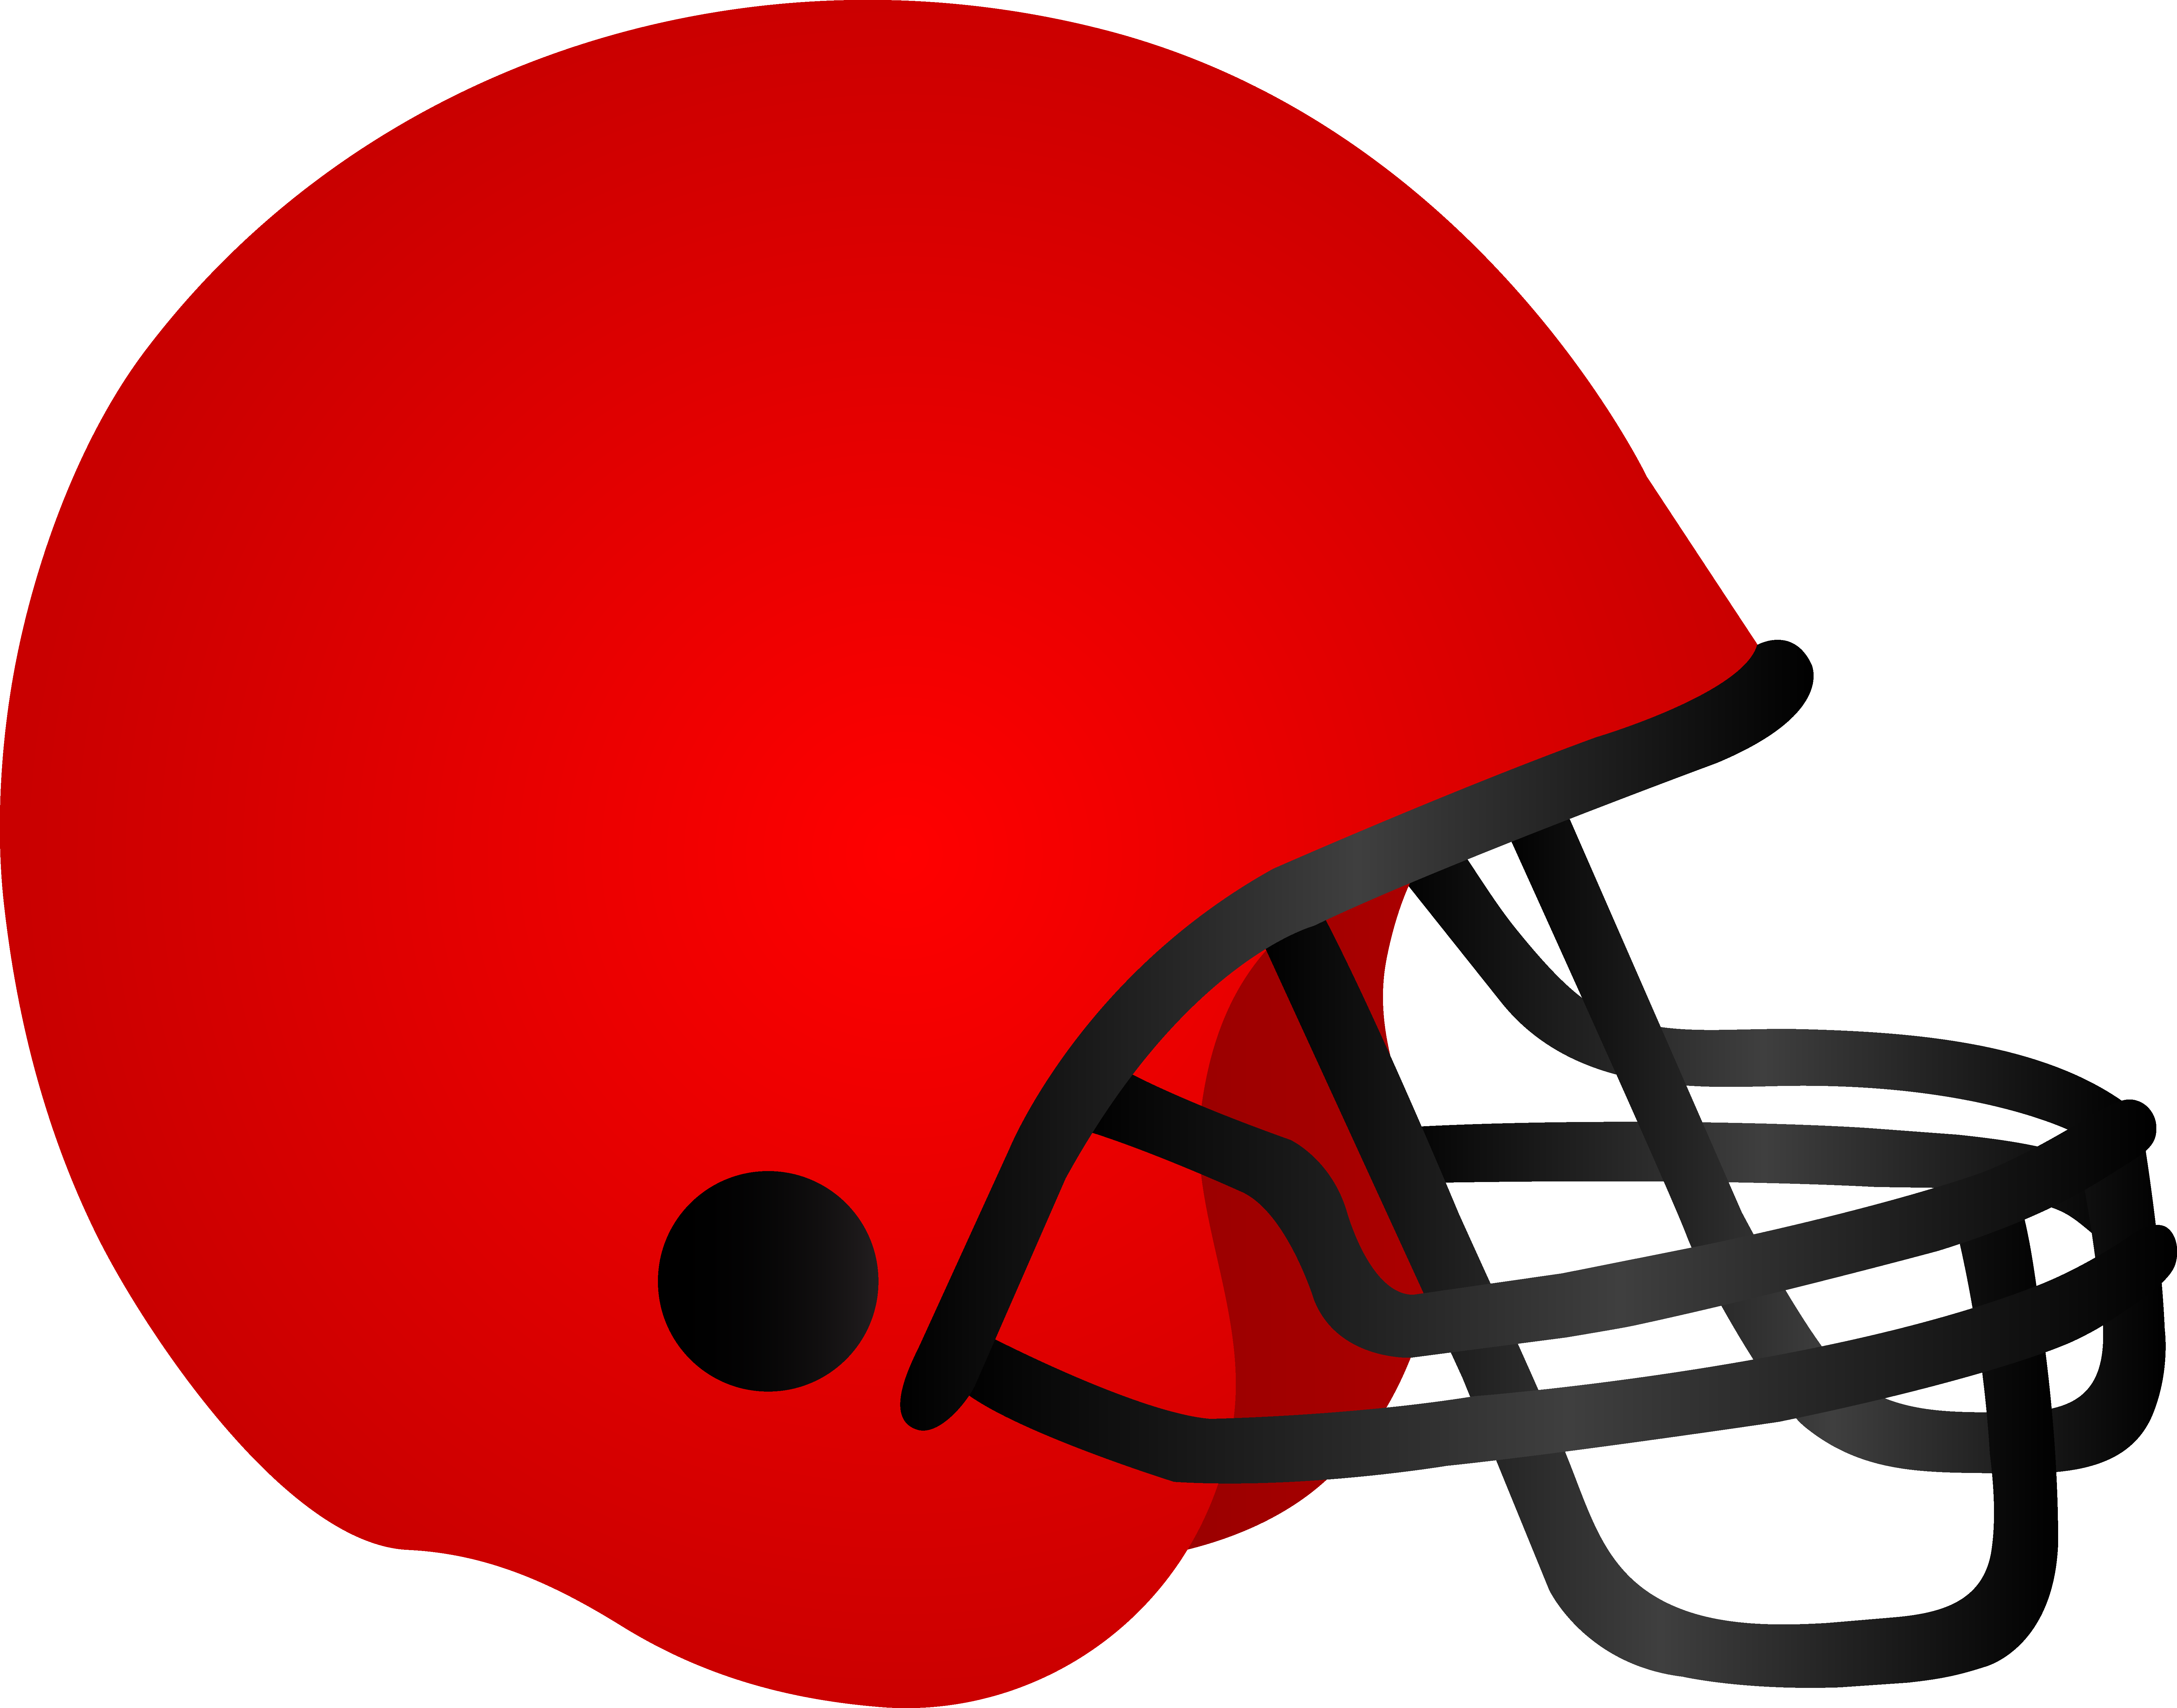 American Football Helm Clipart Png Image Football Helmets